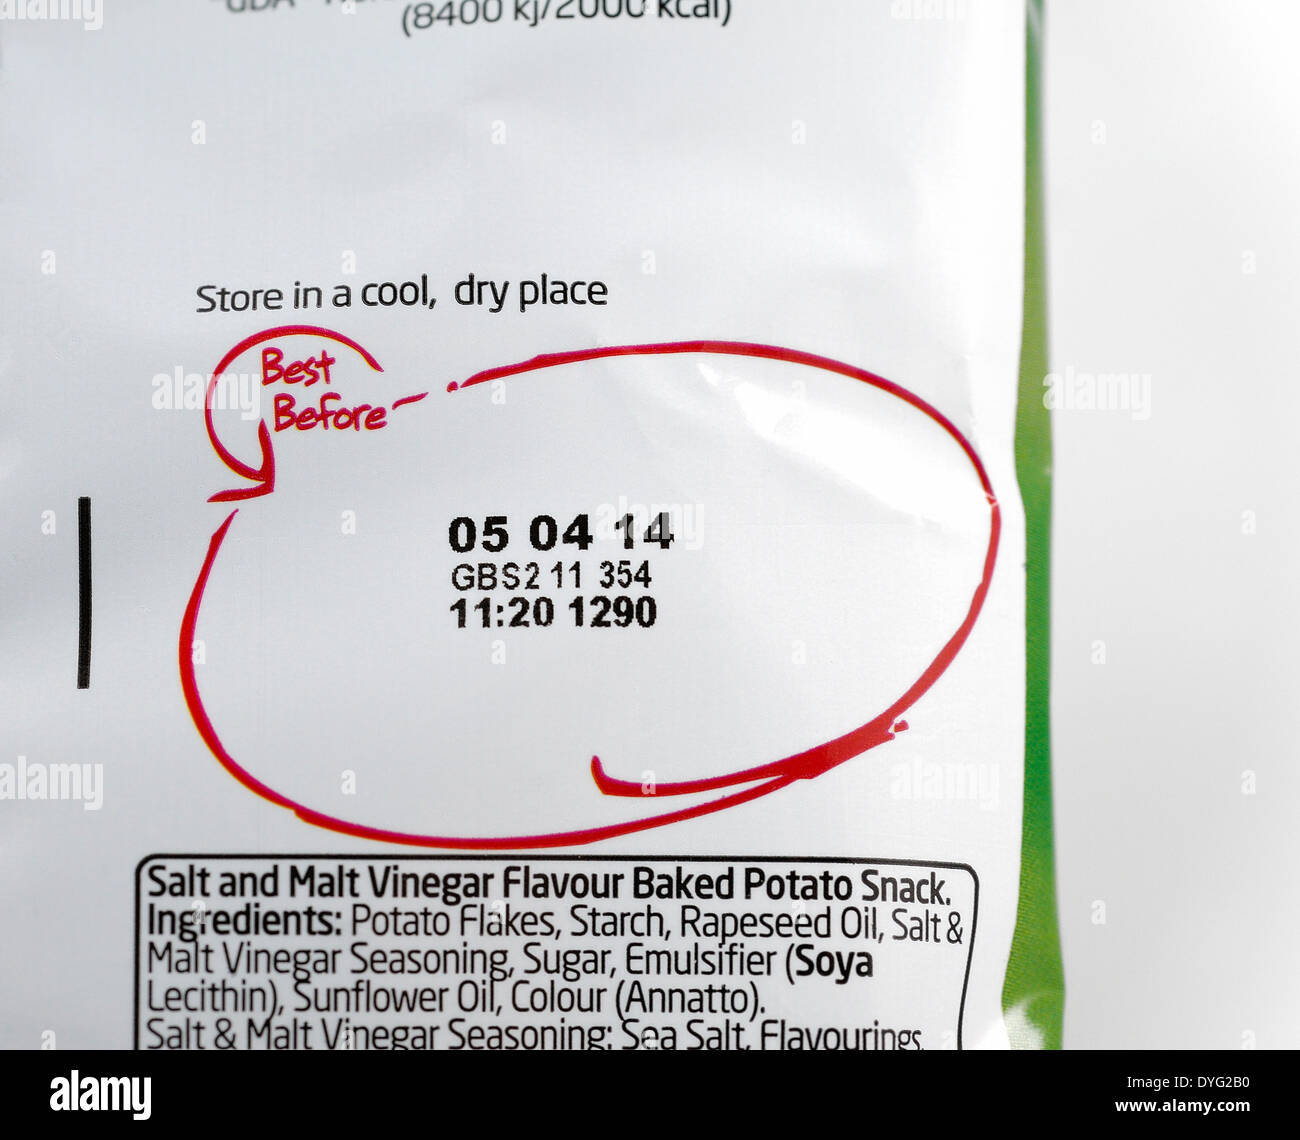 Best before date on the back of a packet of crisps - Stock Image